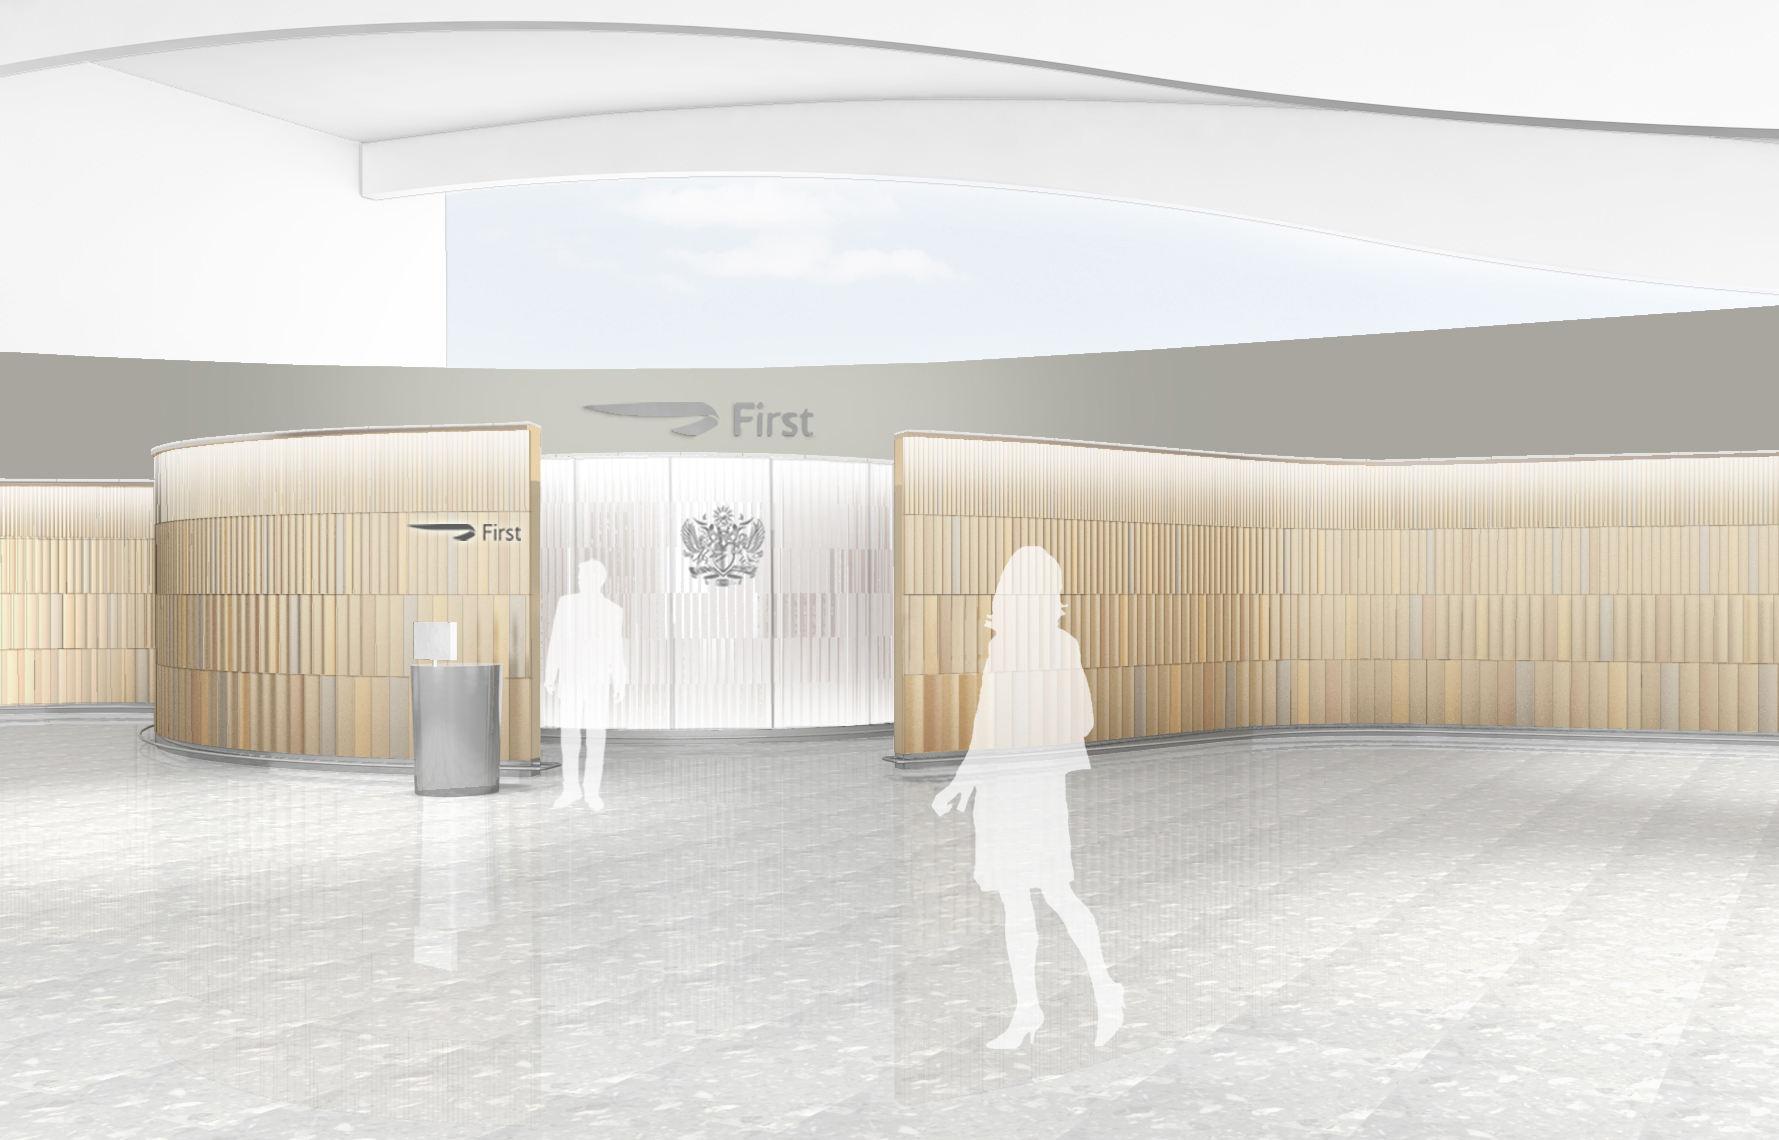 On the termincal side, BA's First zone will be walled off with a wooden facade. Image: British Airways